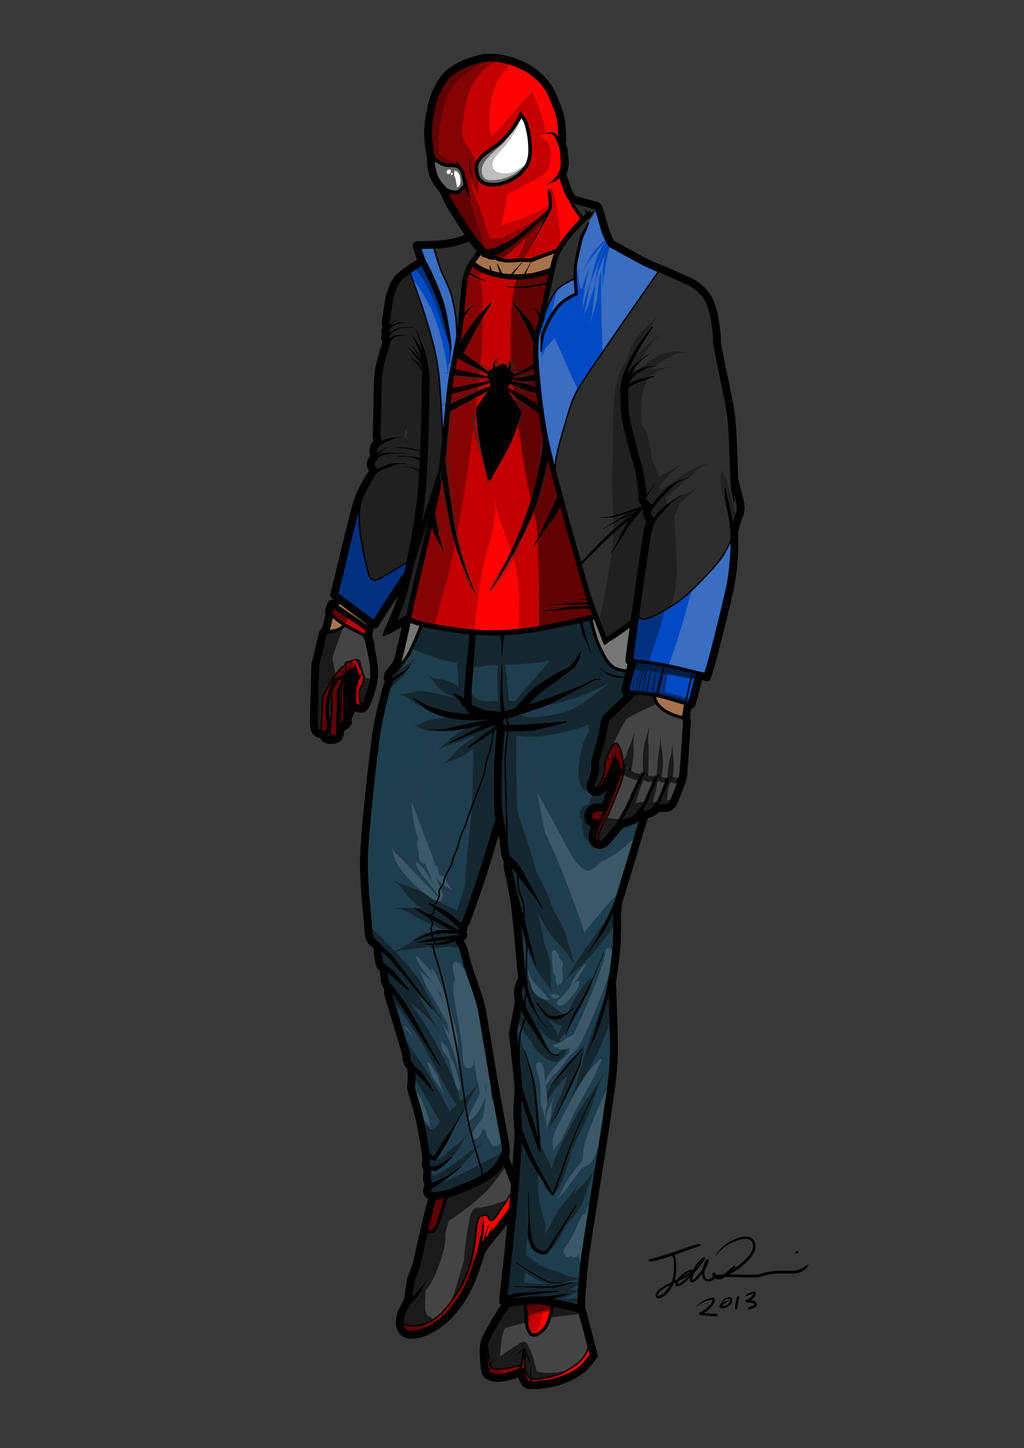 Spiderman Redesign by MangleDangle on DeviantArt: mangledangle.deviantart.com/art/Spiderman-Redesign-353492902